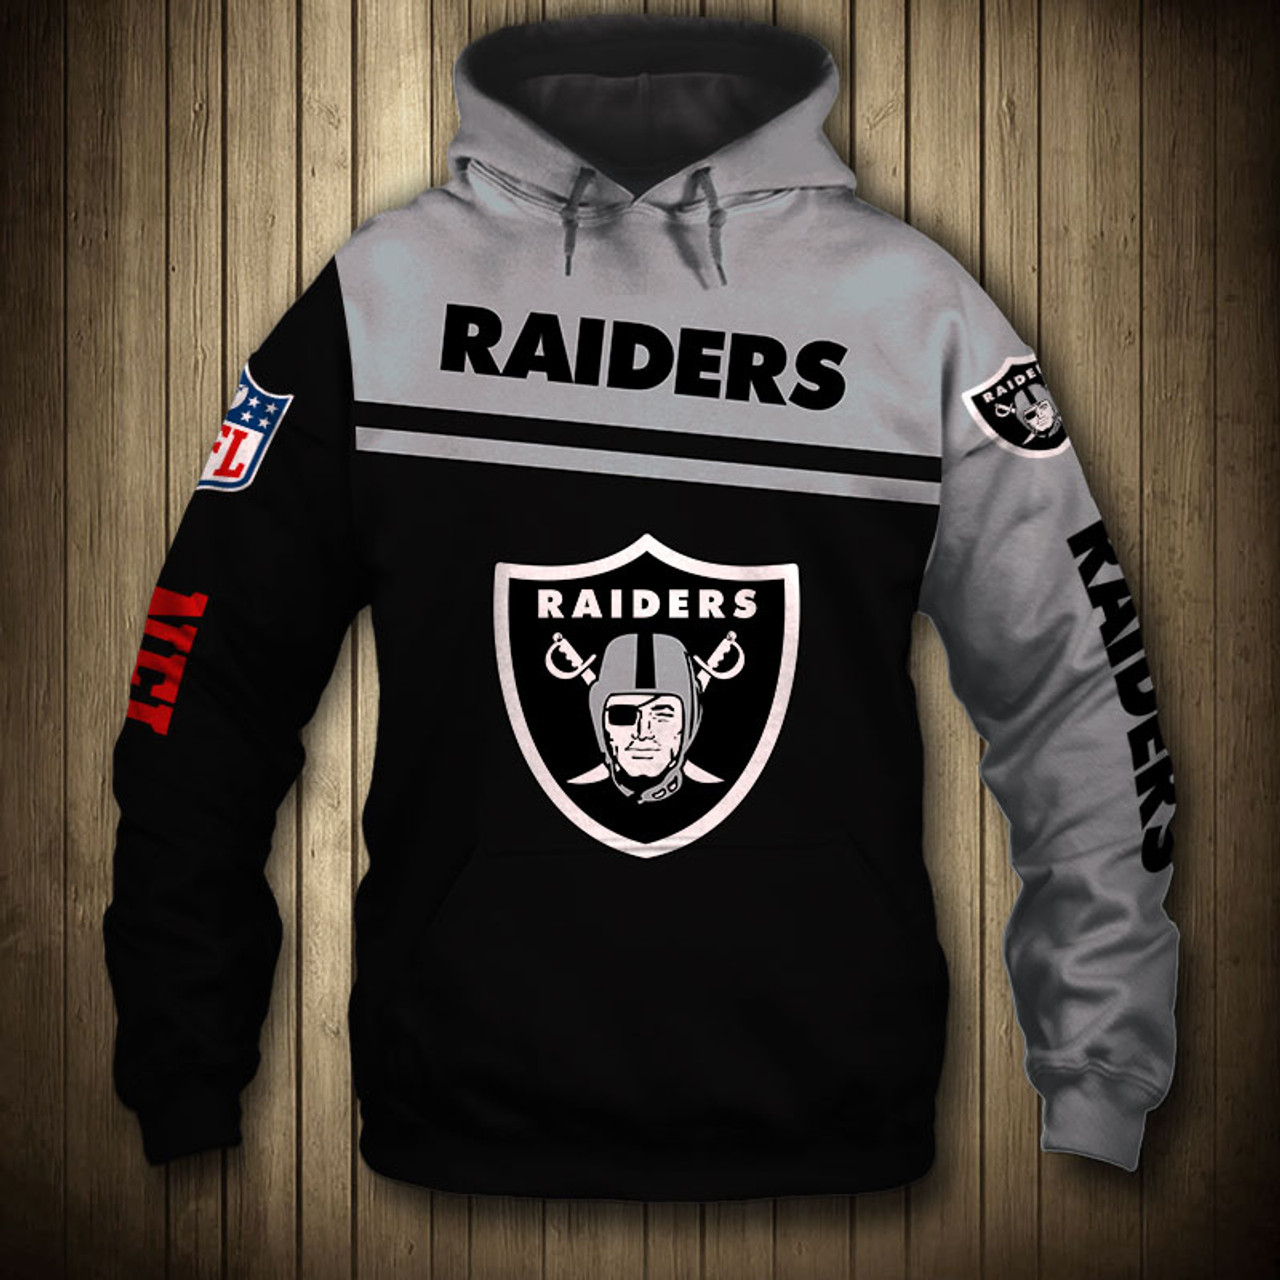 **(OFFICIAL-NEW-N.F.L.OAKLAND-RAIDERS-TEAM-PULLOVER-HOODIES/NICE-CUSTOM-3D-GRAPHIC-PRINTED-DOUBLE-SIDED-ALL-OVER-GRAPHIC-RAIDERS-LOGOS & OFFICIAL-RAIDERS-TEAM-COLORS/WARM-PREMIUM-OFFICIAL-N.F.L.RAIDERS-TEAM-TRENDY-PULLOVER-GAME-DAY-HOODIES)**